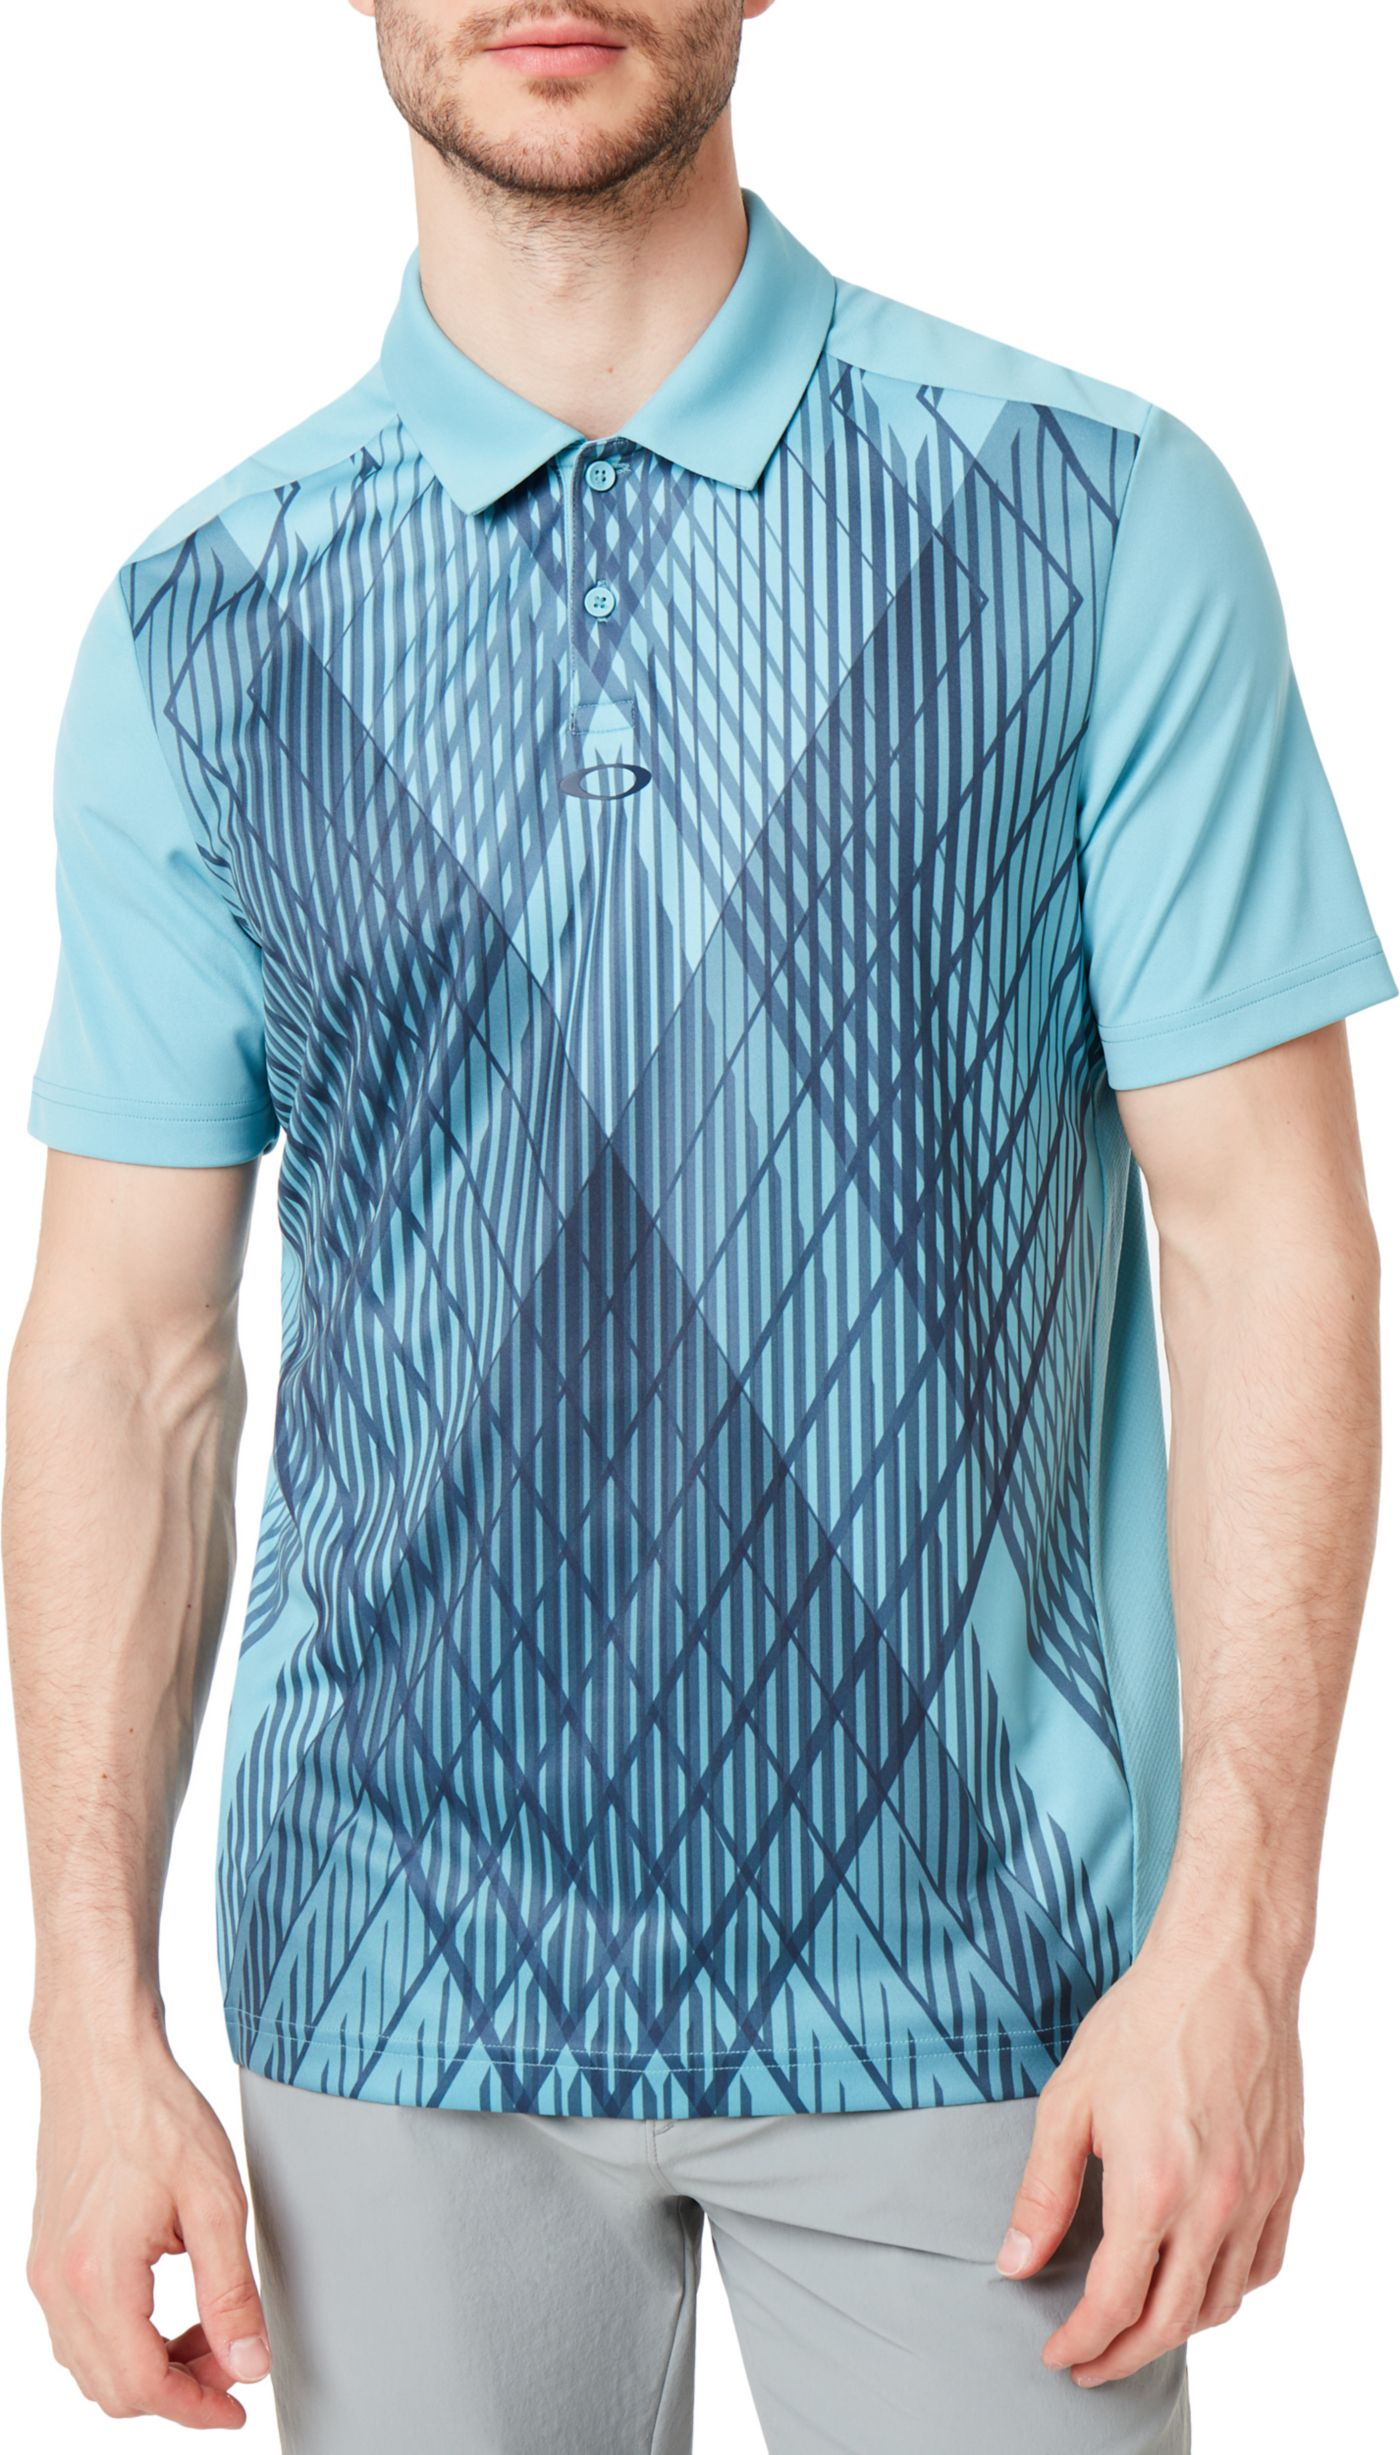 Oakley Men's Cross Graphic Golf Polo